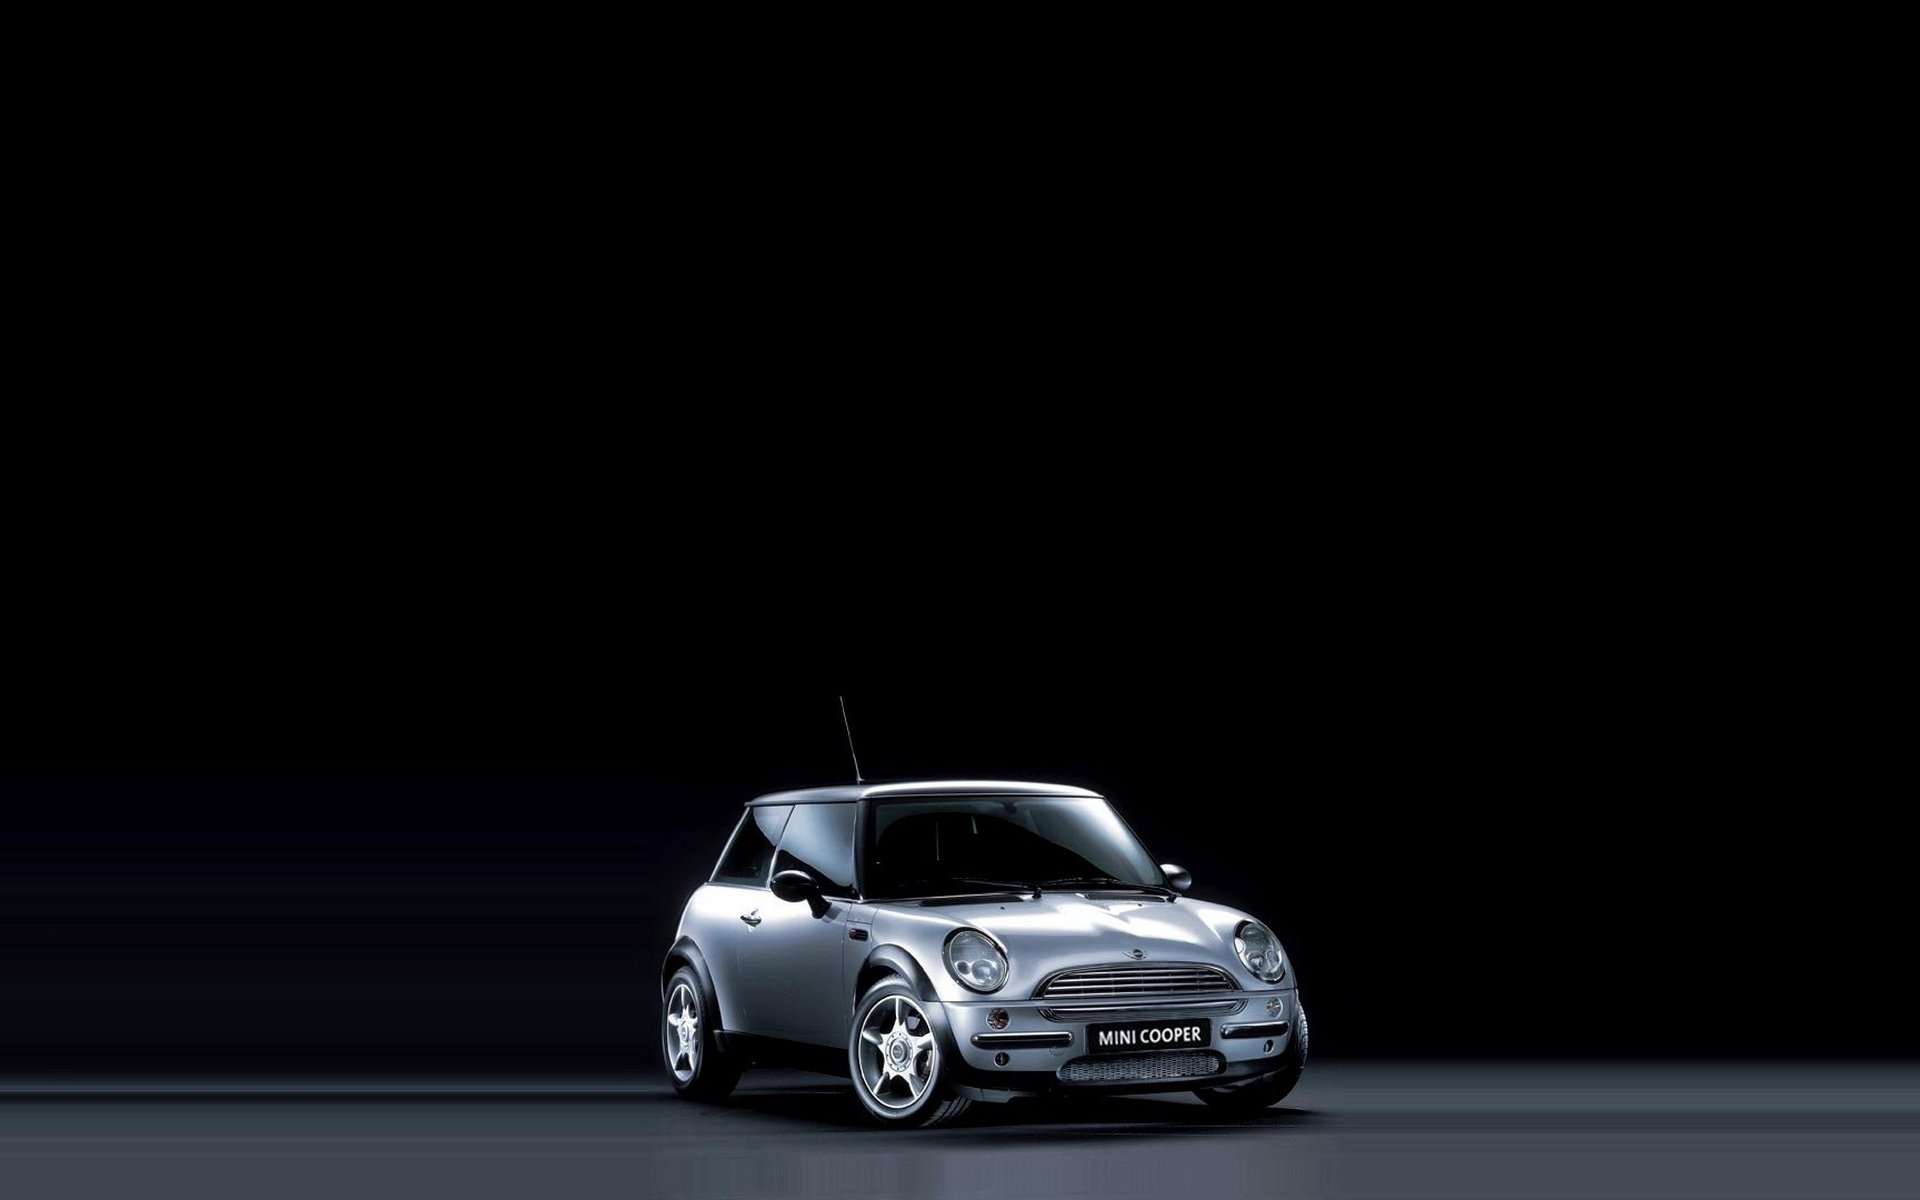 181 Mini Cooper Hd Wallpapers Background Images